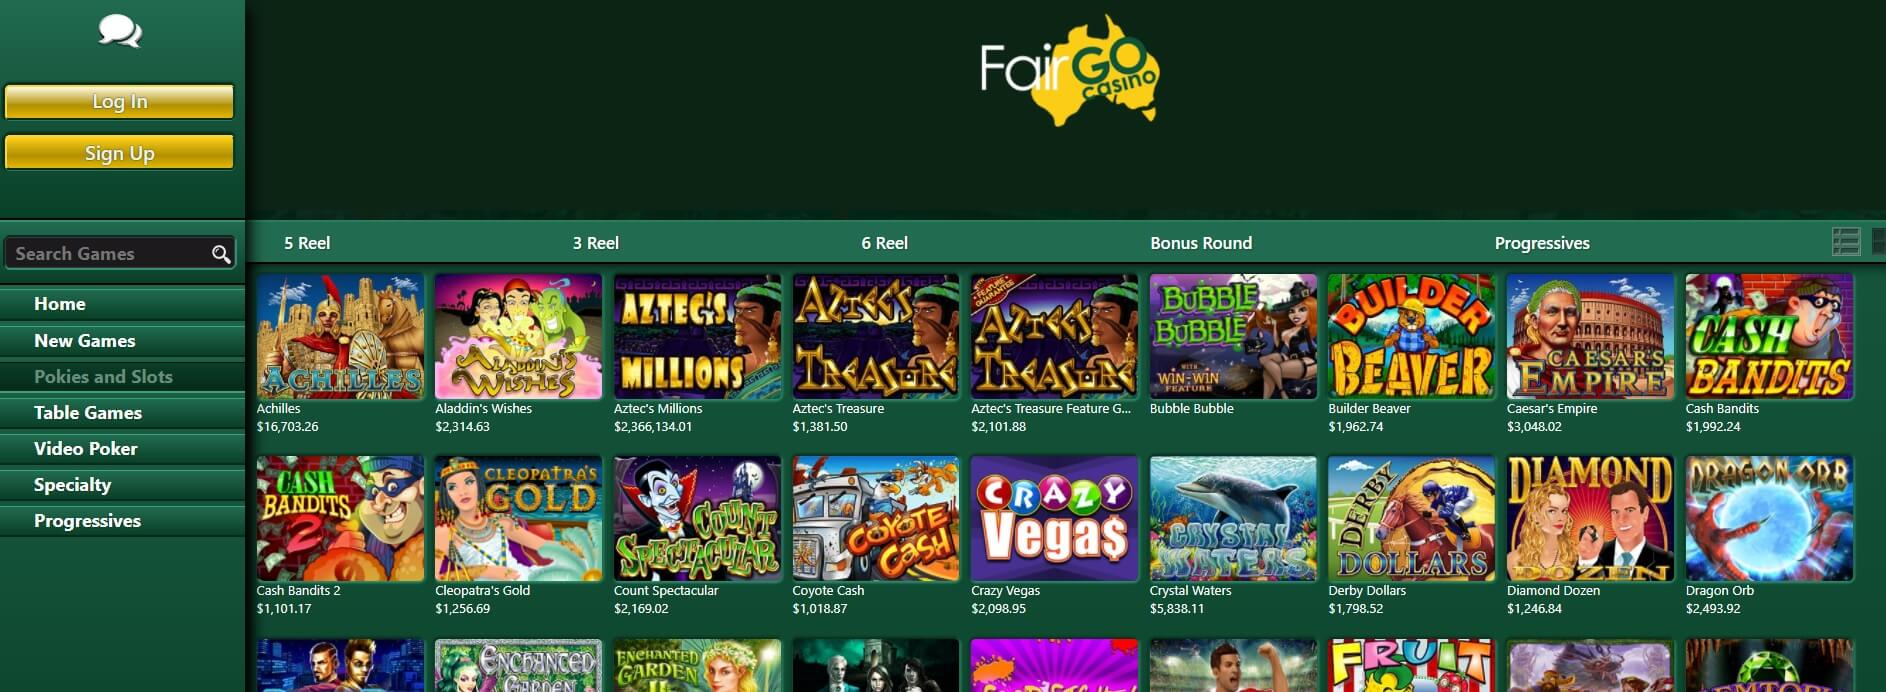 fair go casino pokies